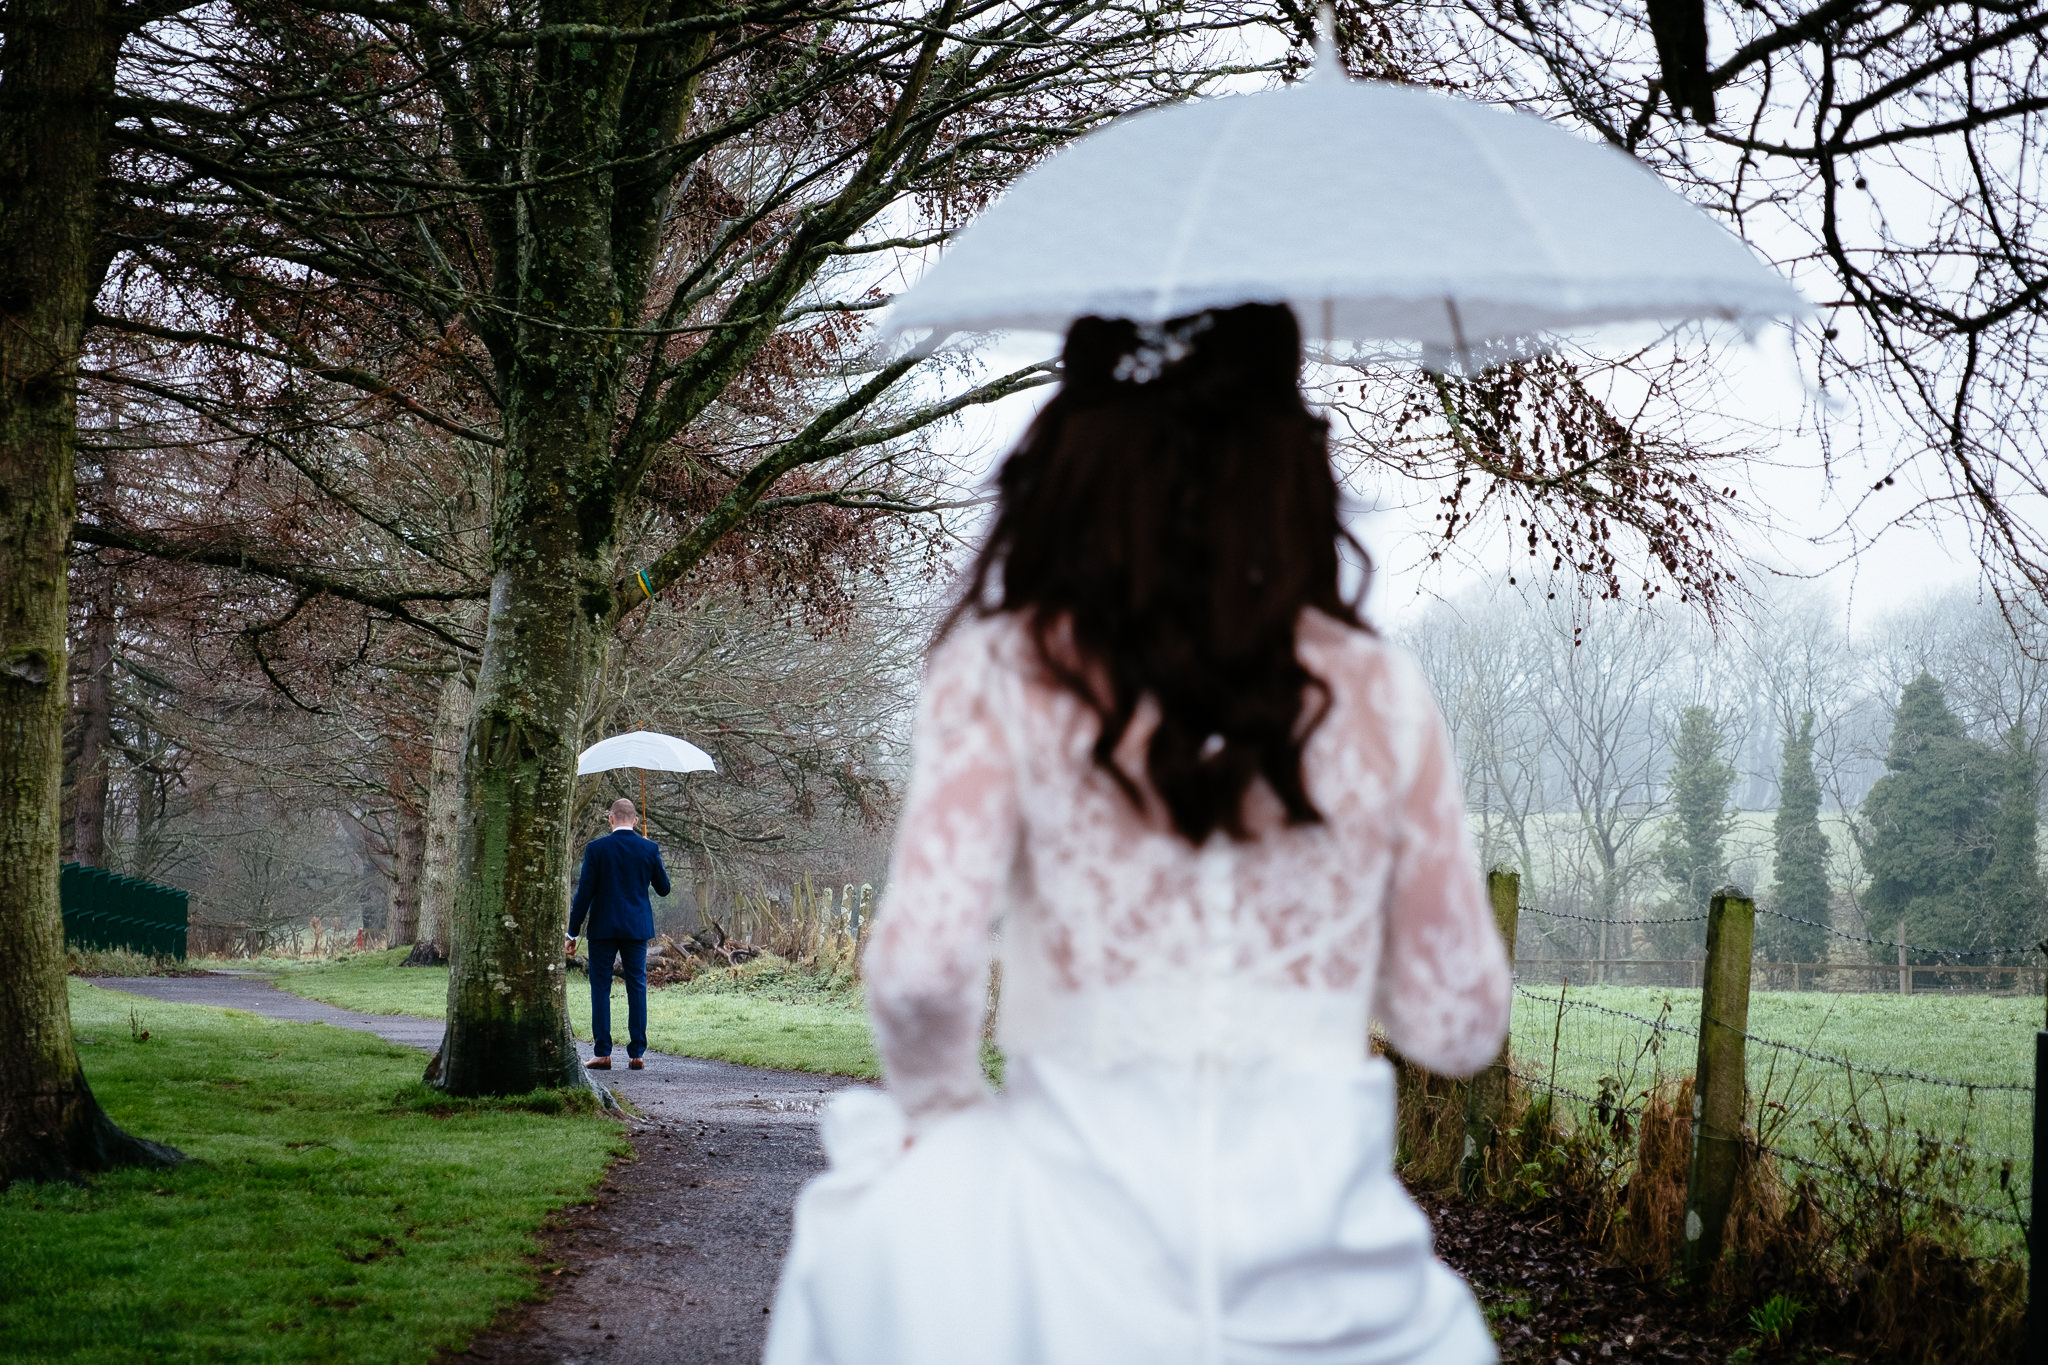 irst look between a bride and groom in the rain